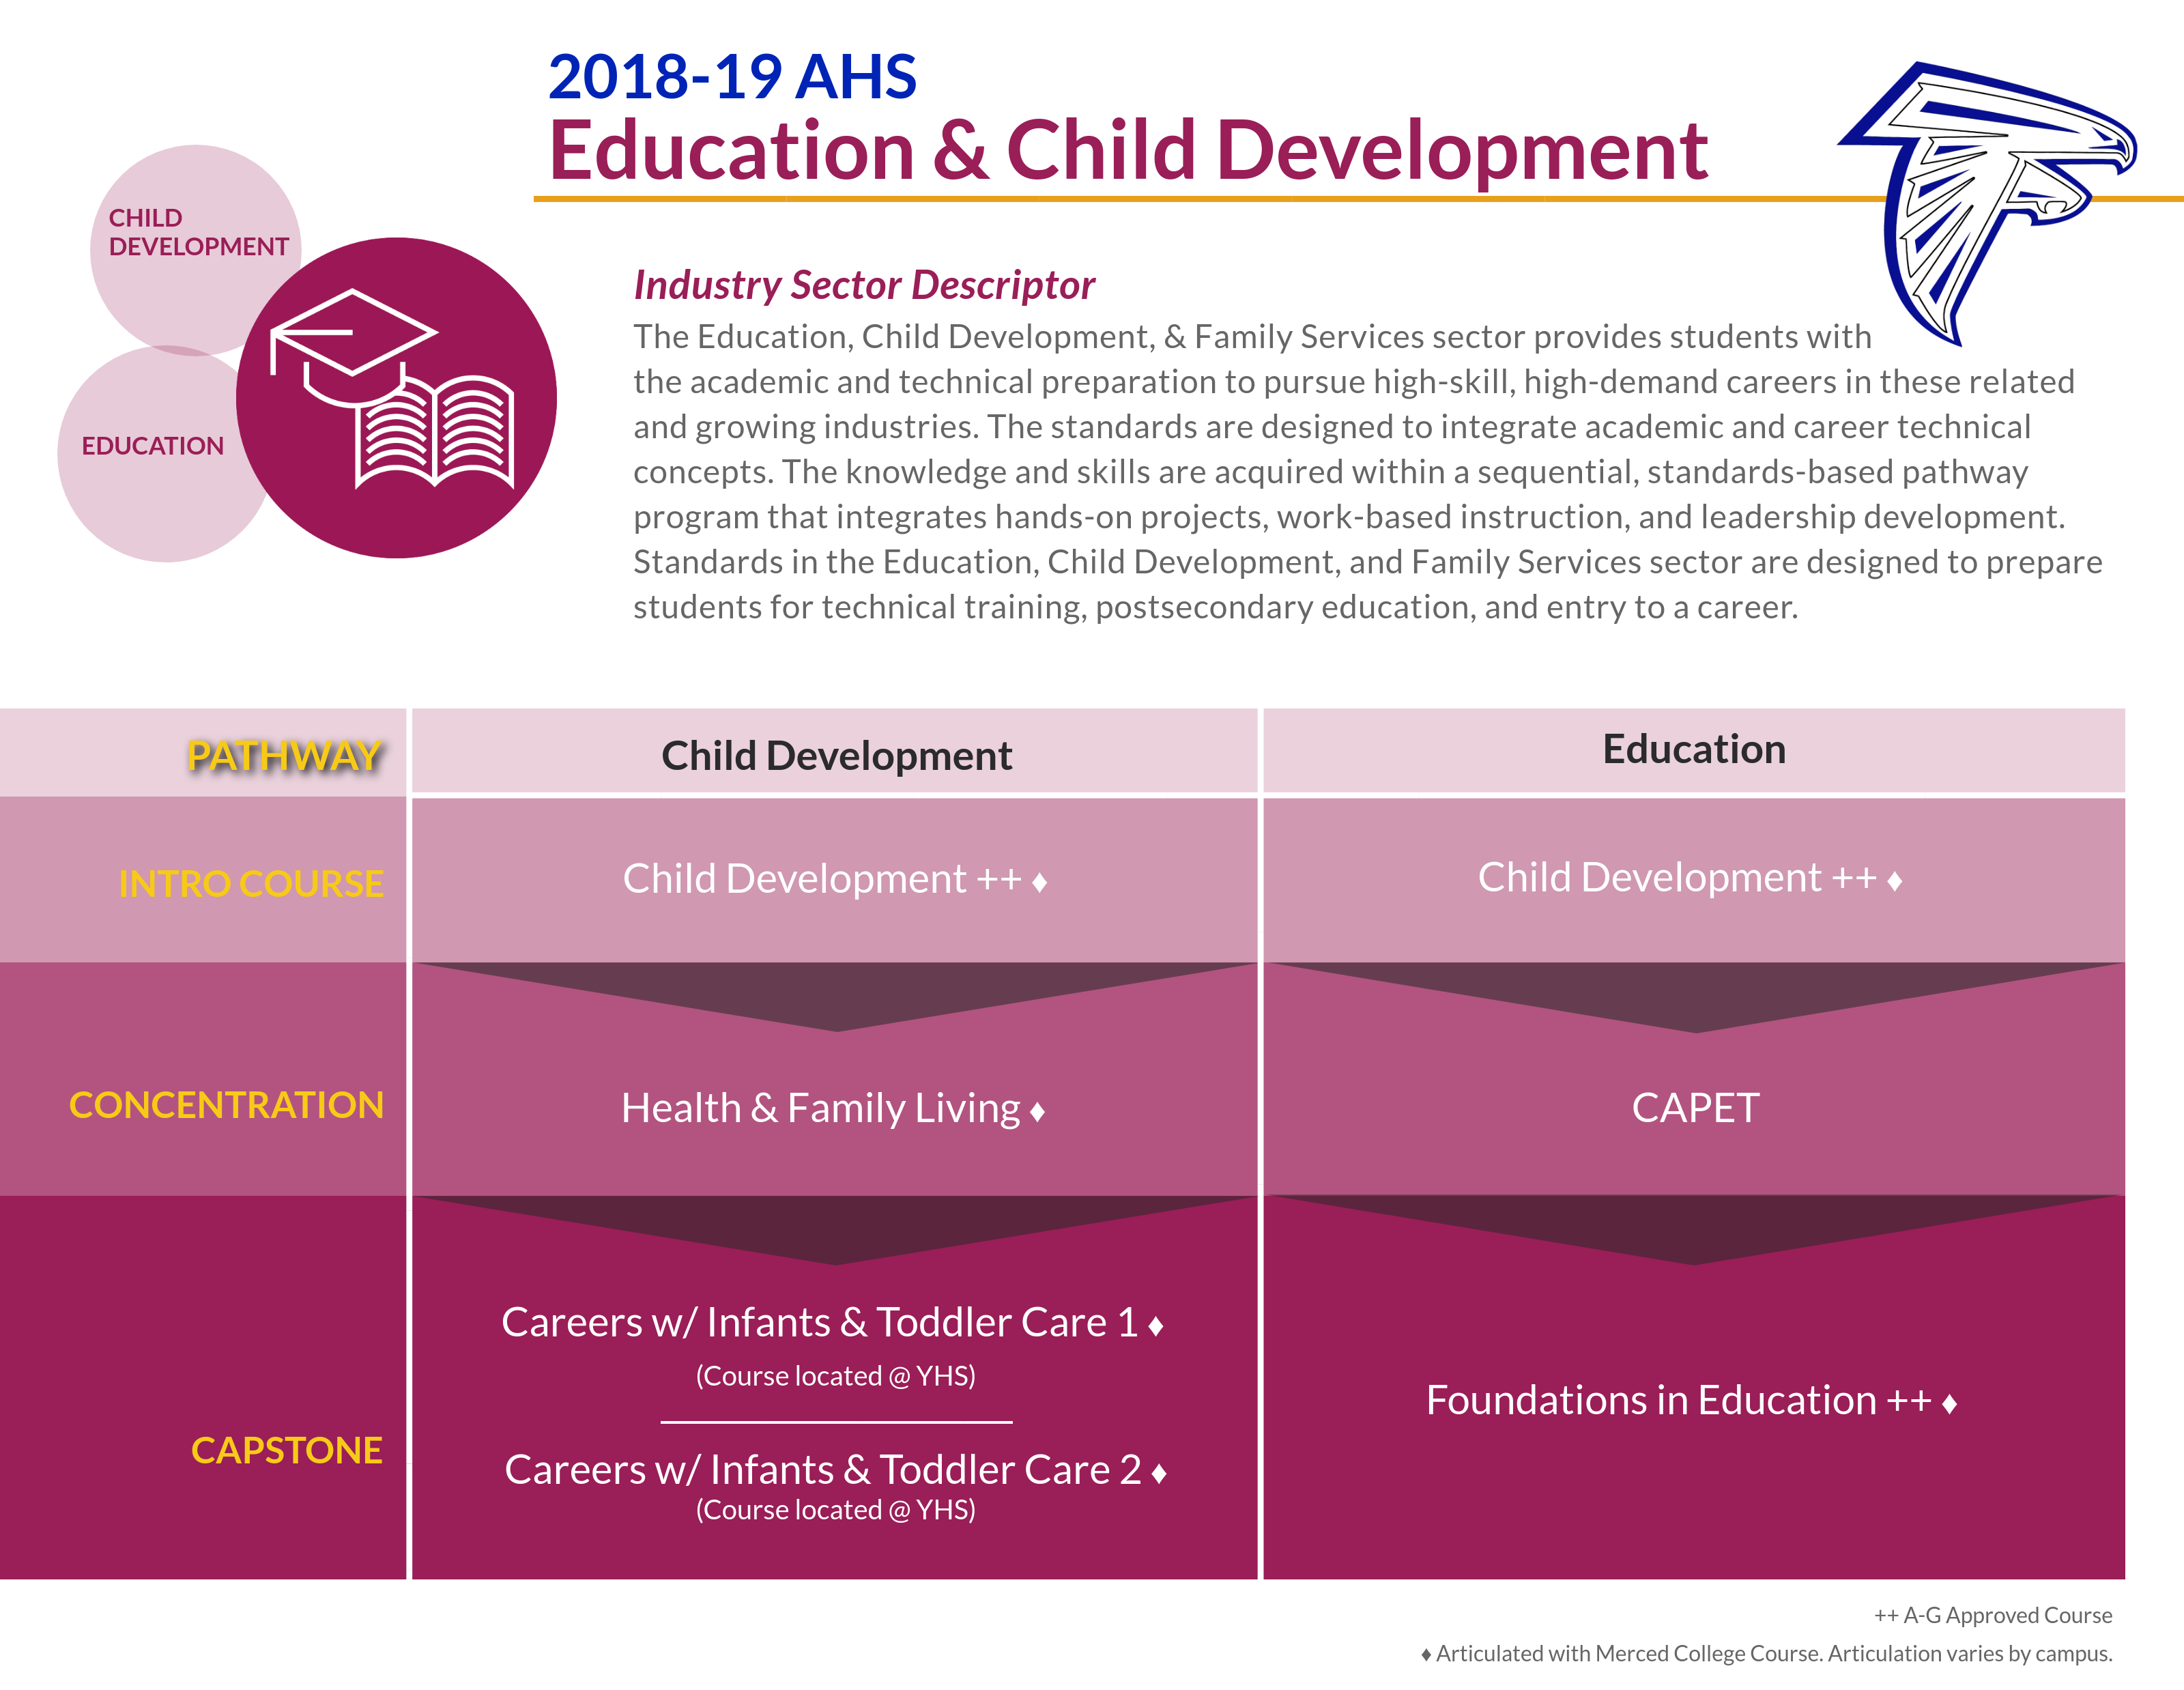 Education and Child Development Pathway